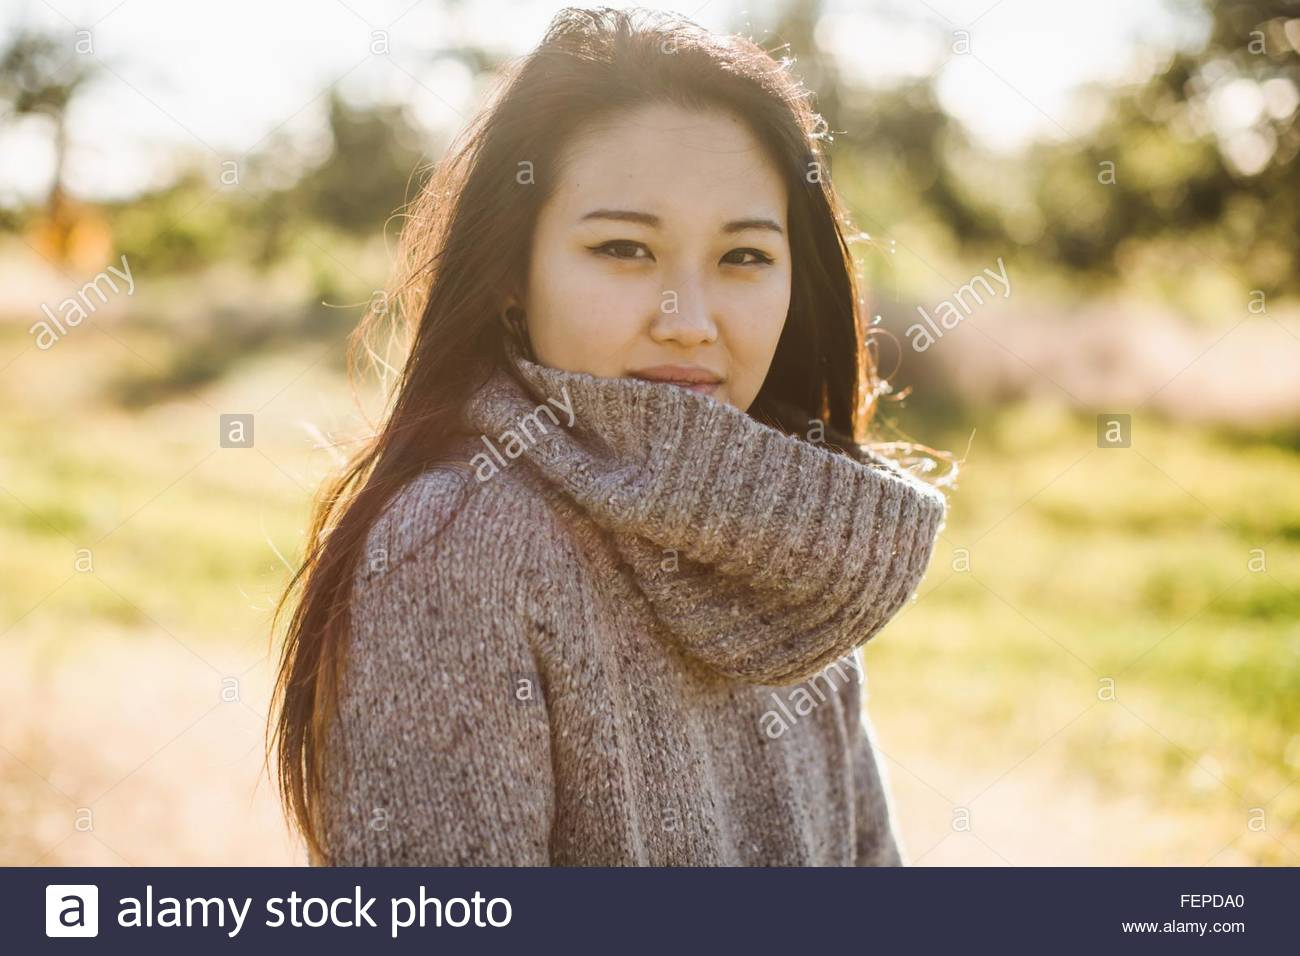 Portrait of young woman in rural environment - Stock Image